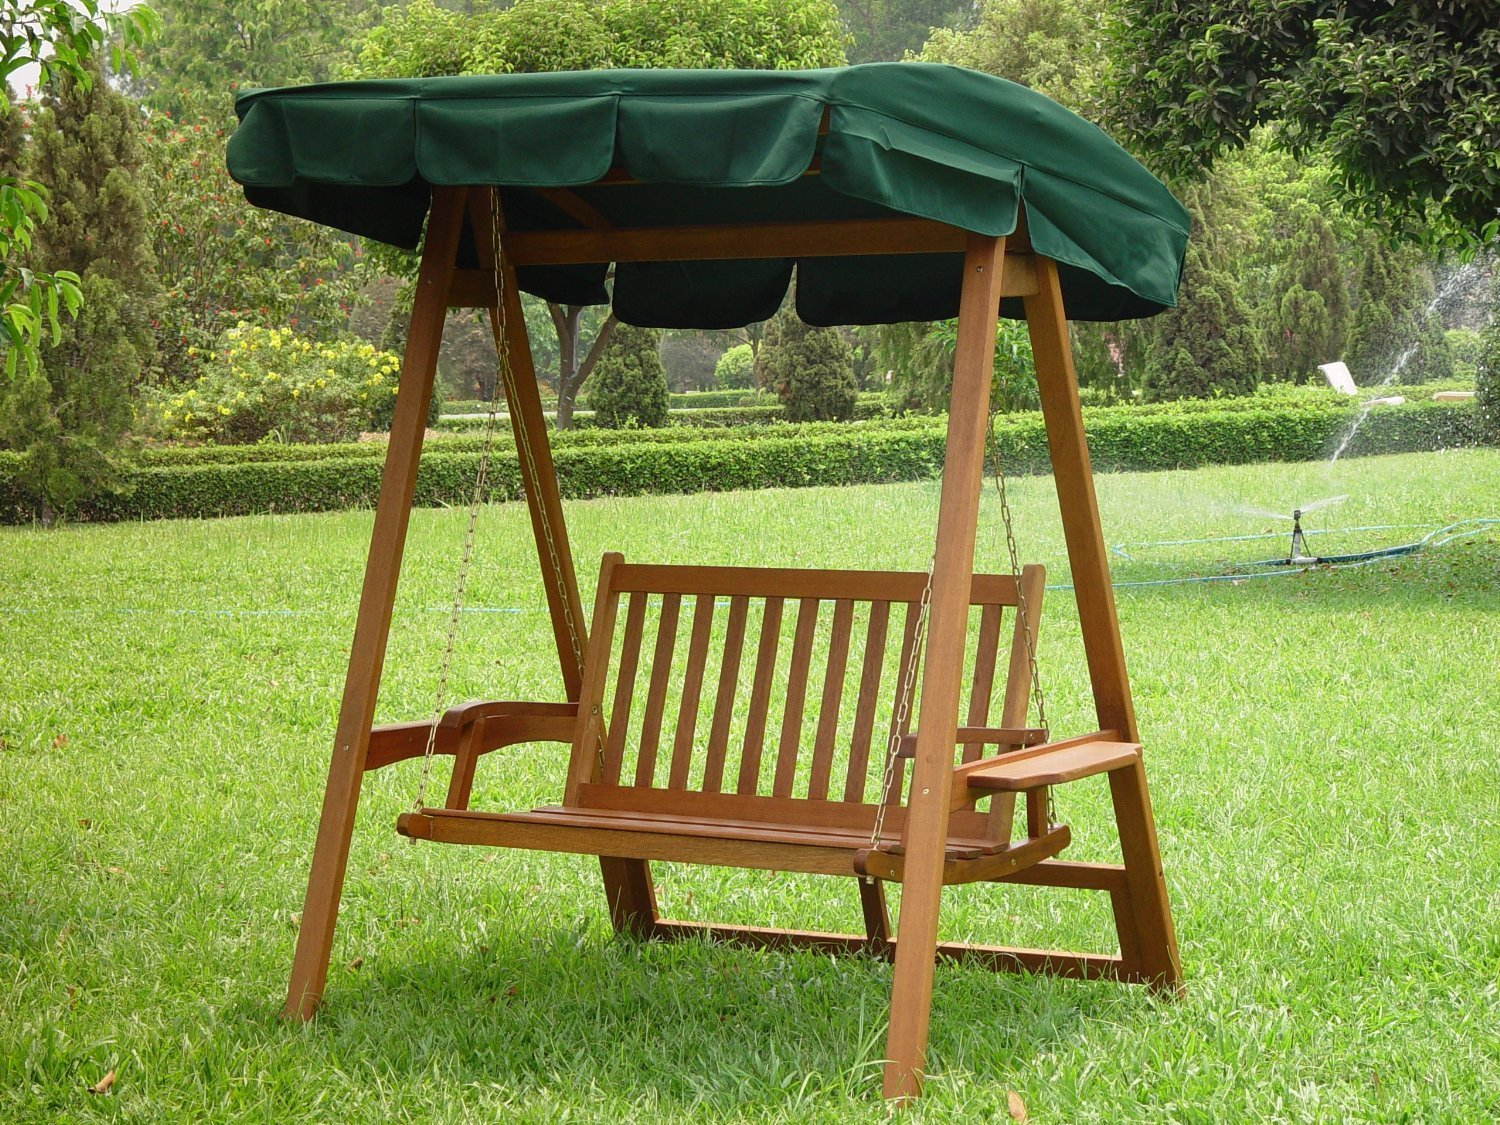 simply wood 2 seater hammock and canopy simply wood 2 seater hammock and canopy   simply wood  rh   wooden garden furniture